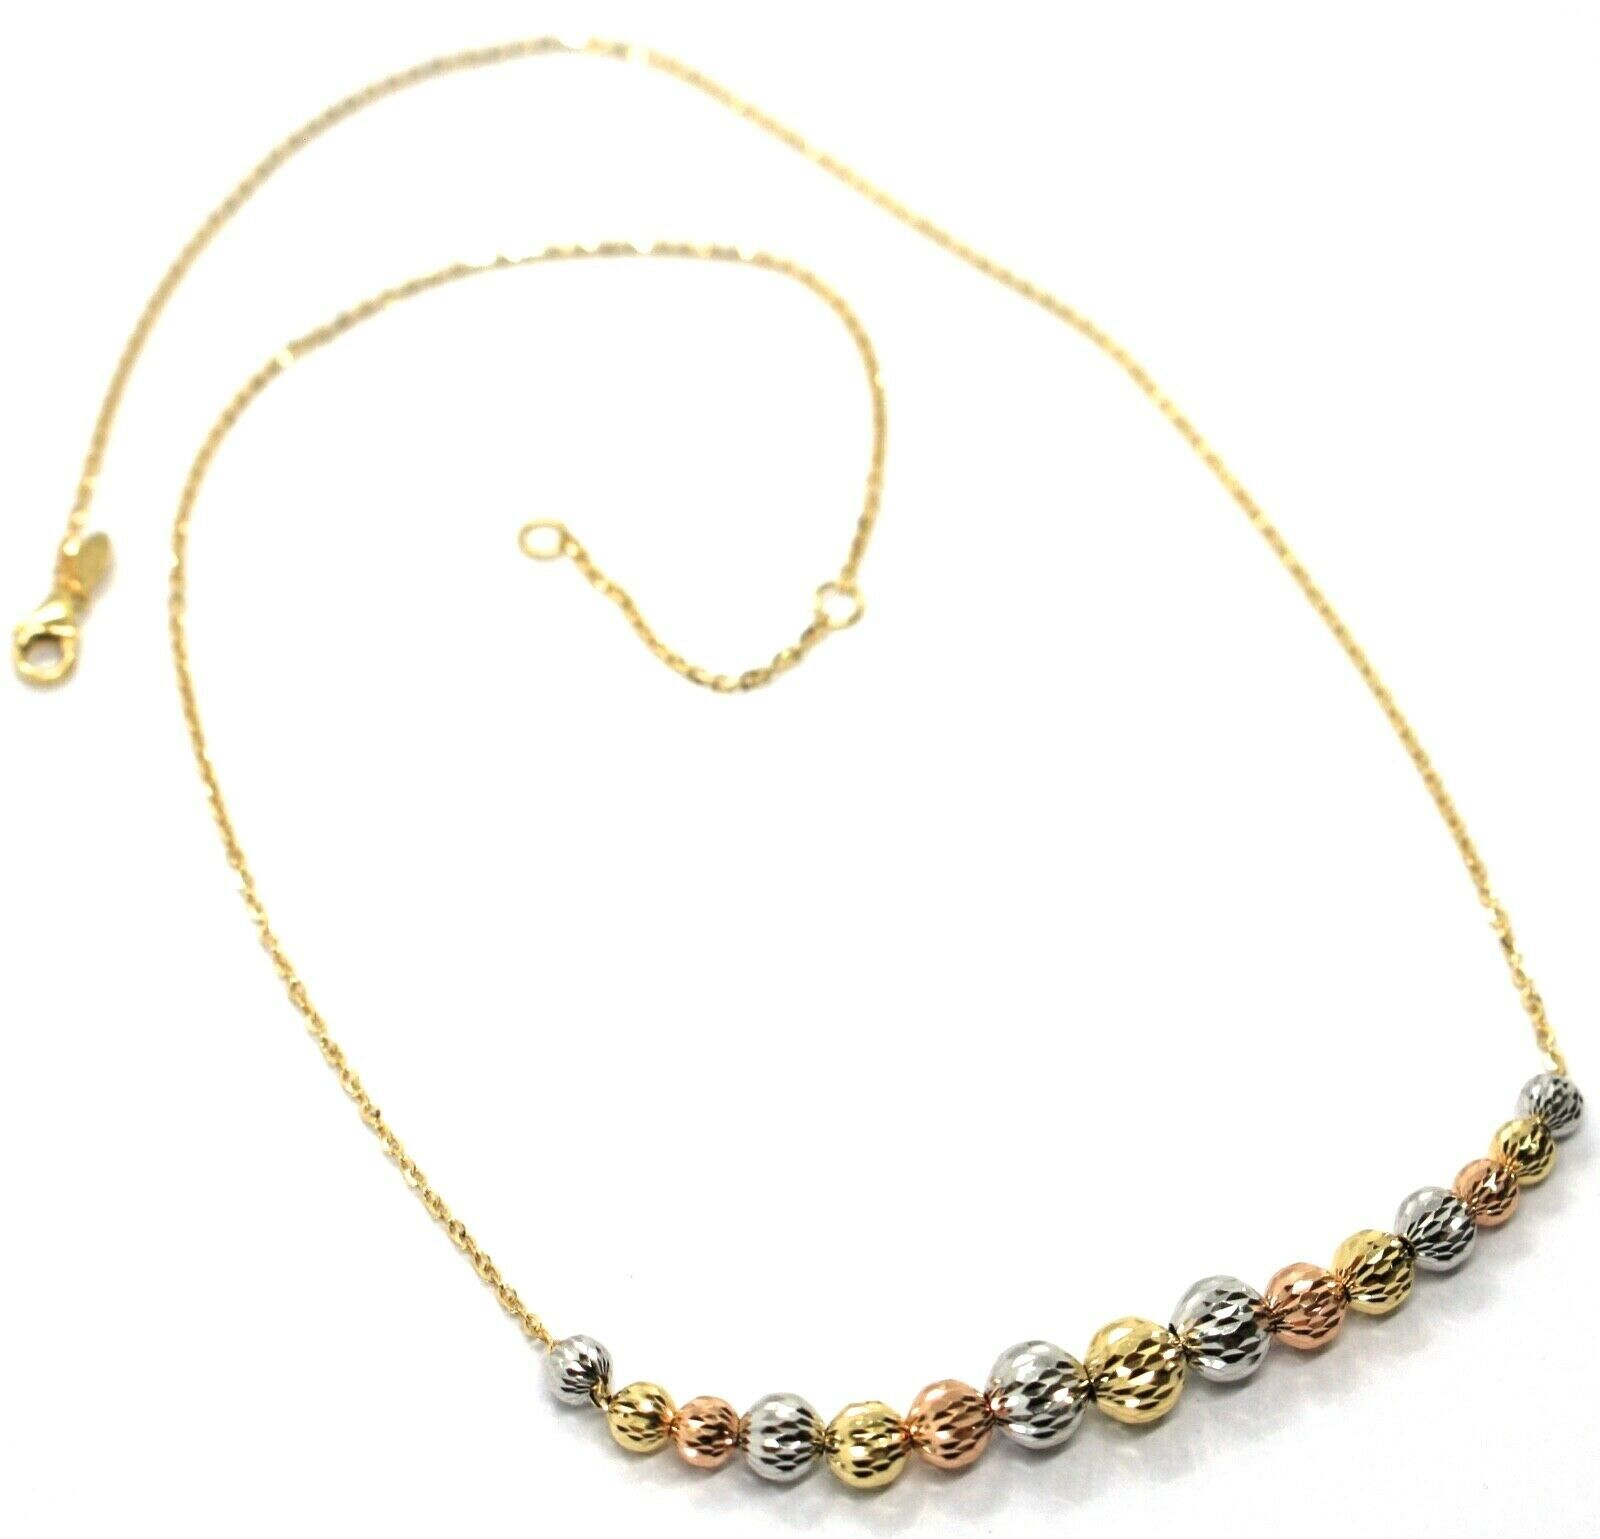 18K YELLOW WHITE ROSE GOLD NECKLACE, ALTERNATE FACETED WORKED BALLS SPHERES